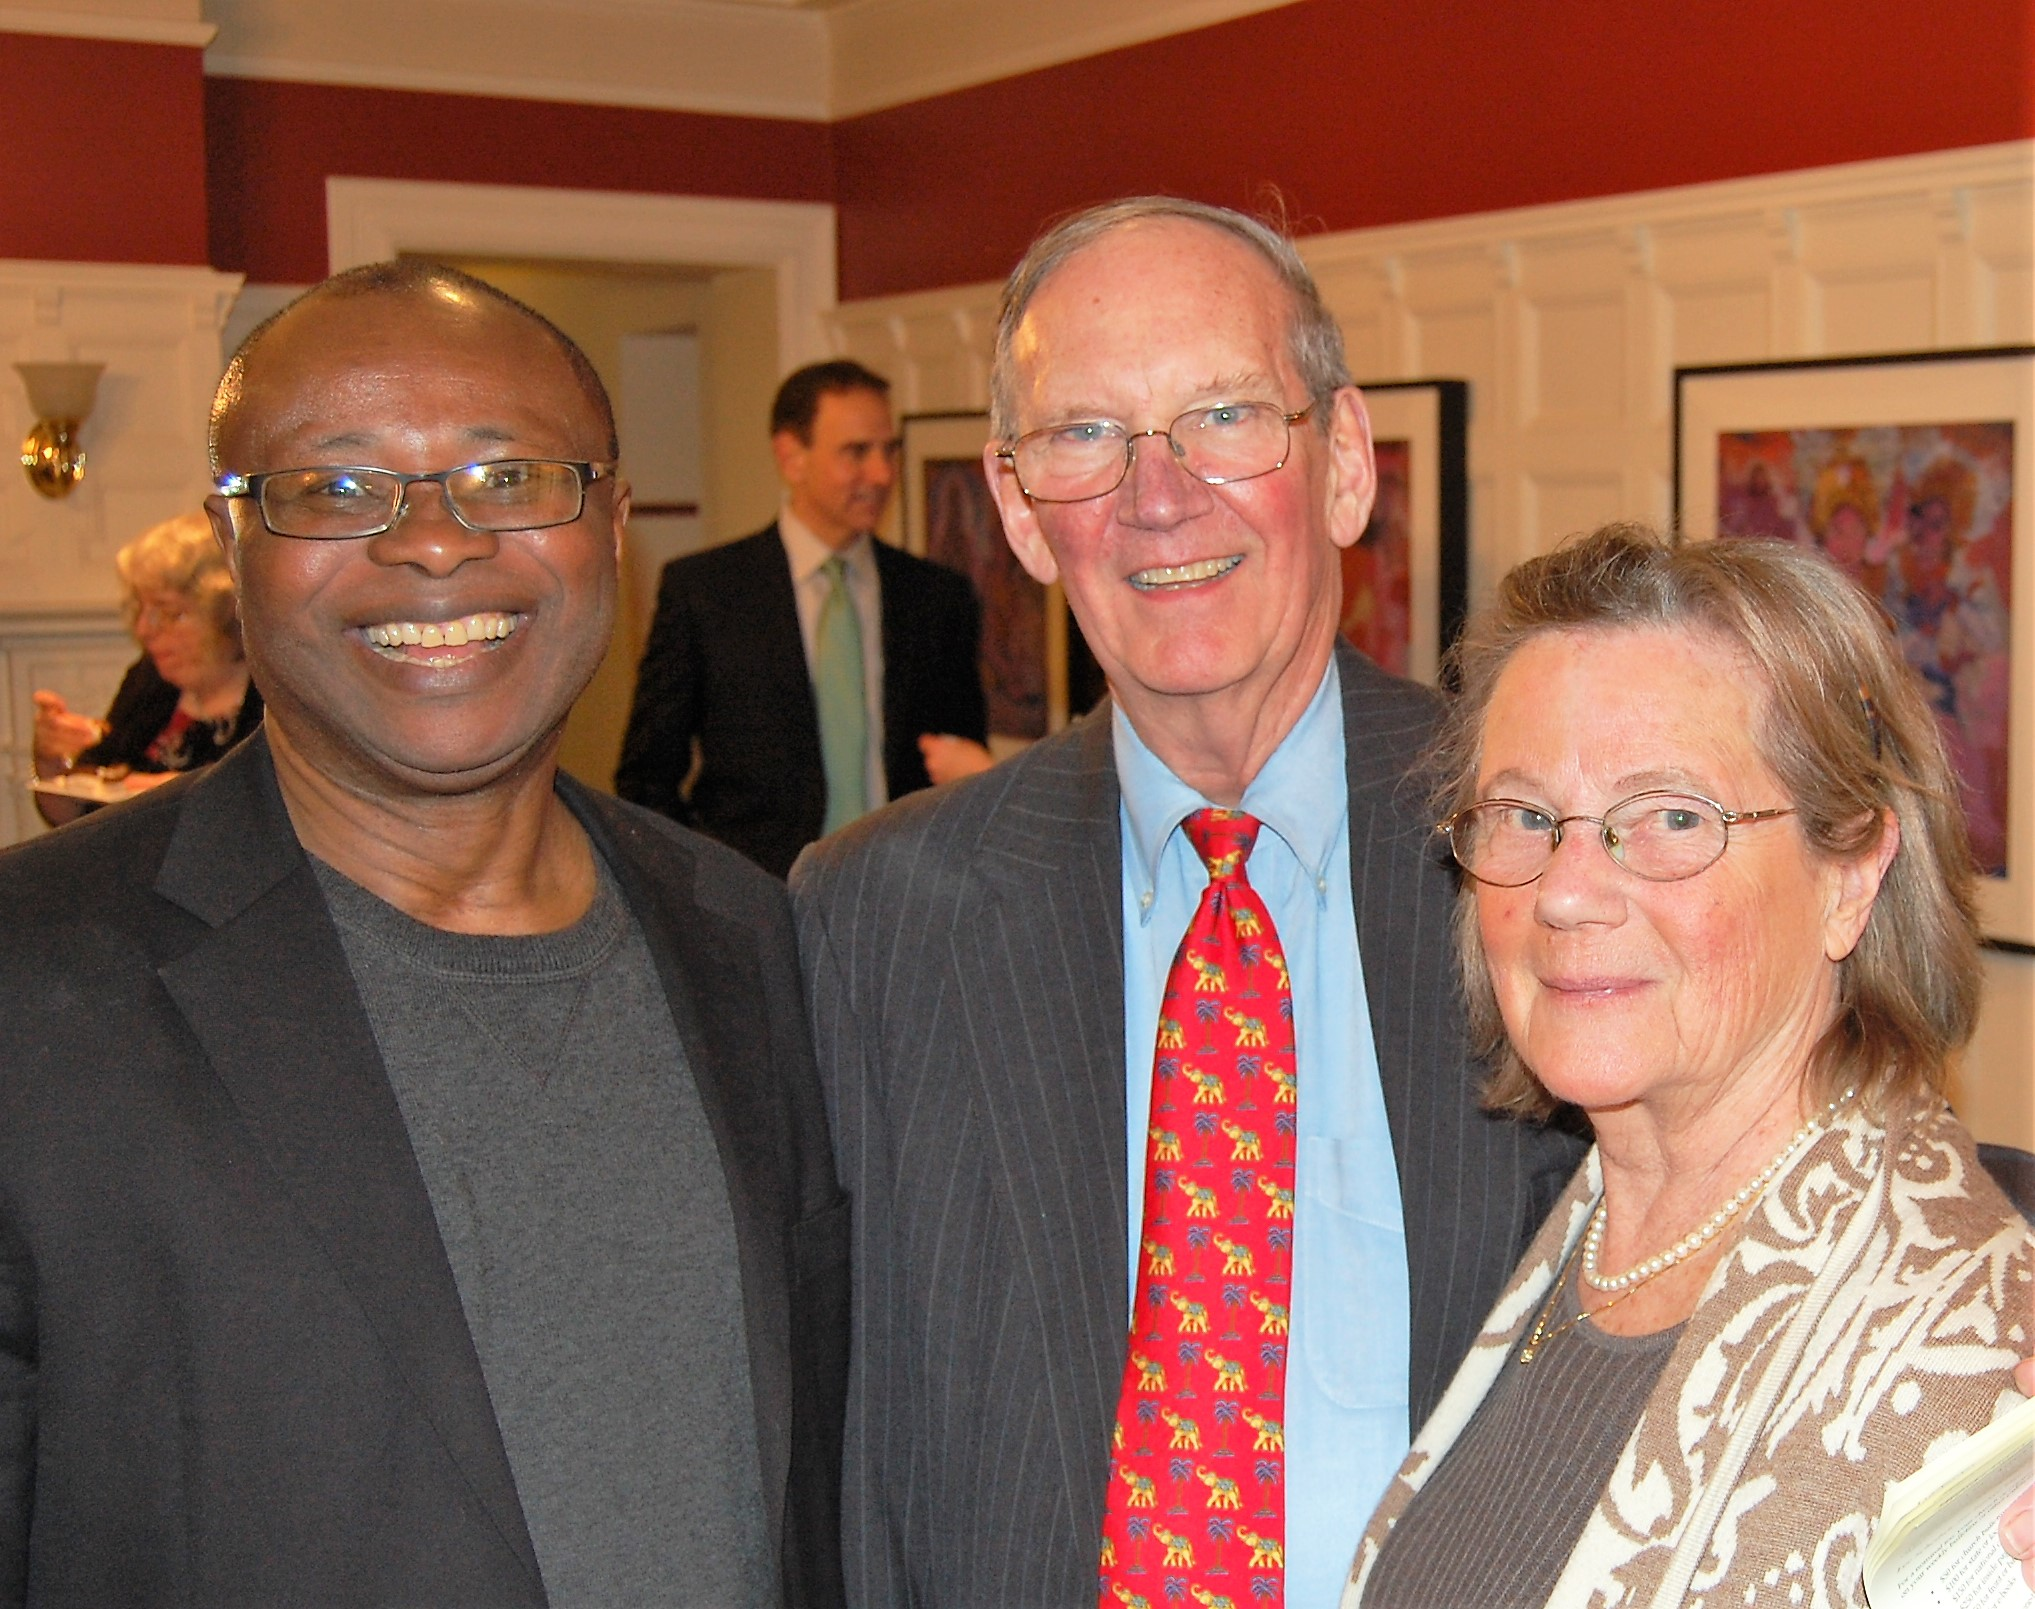 Edward Seibert (center) at the OMSC Art Gala in April of 2018